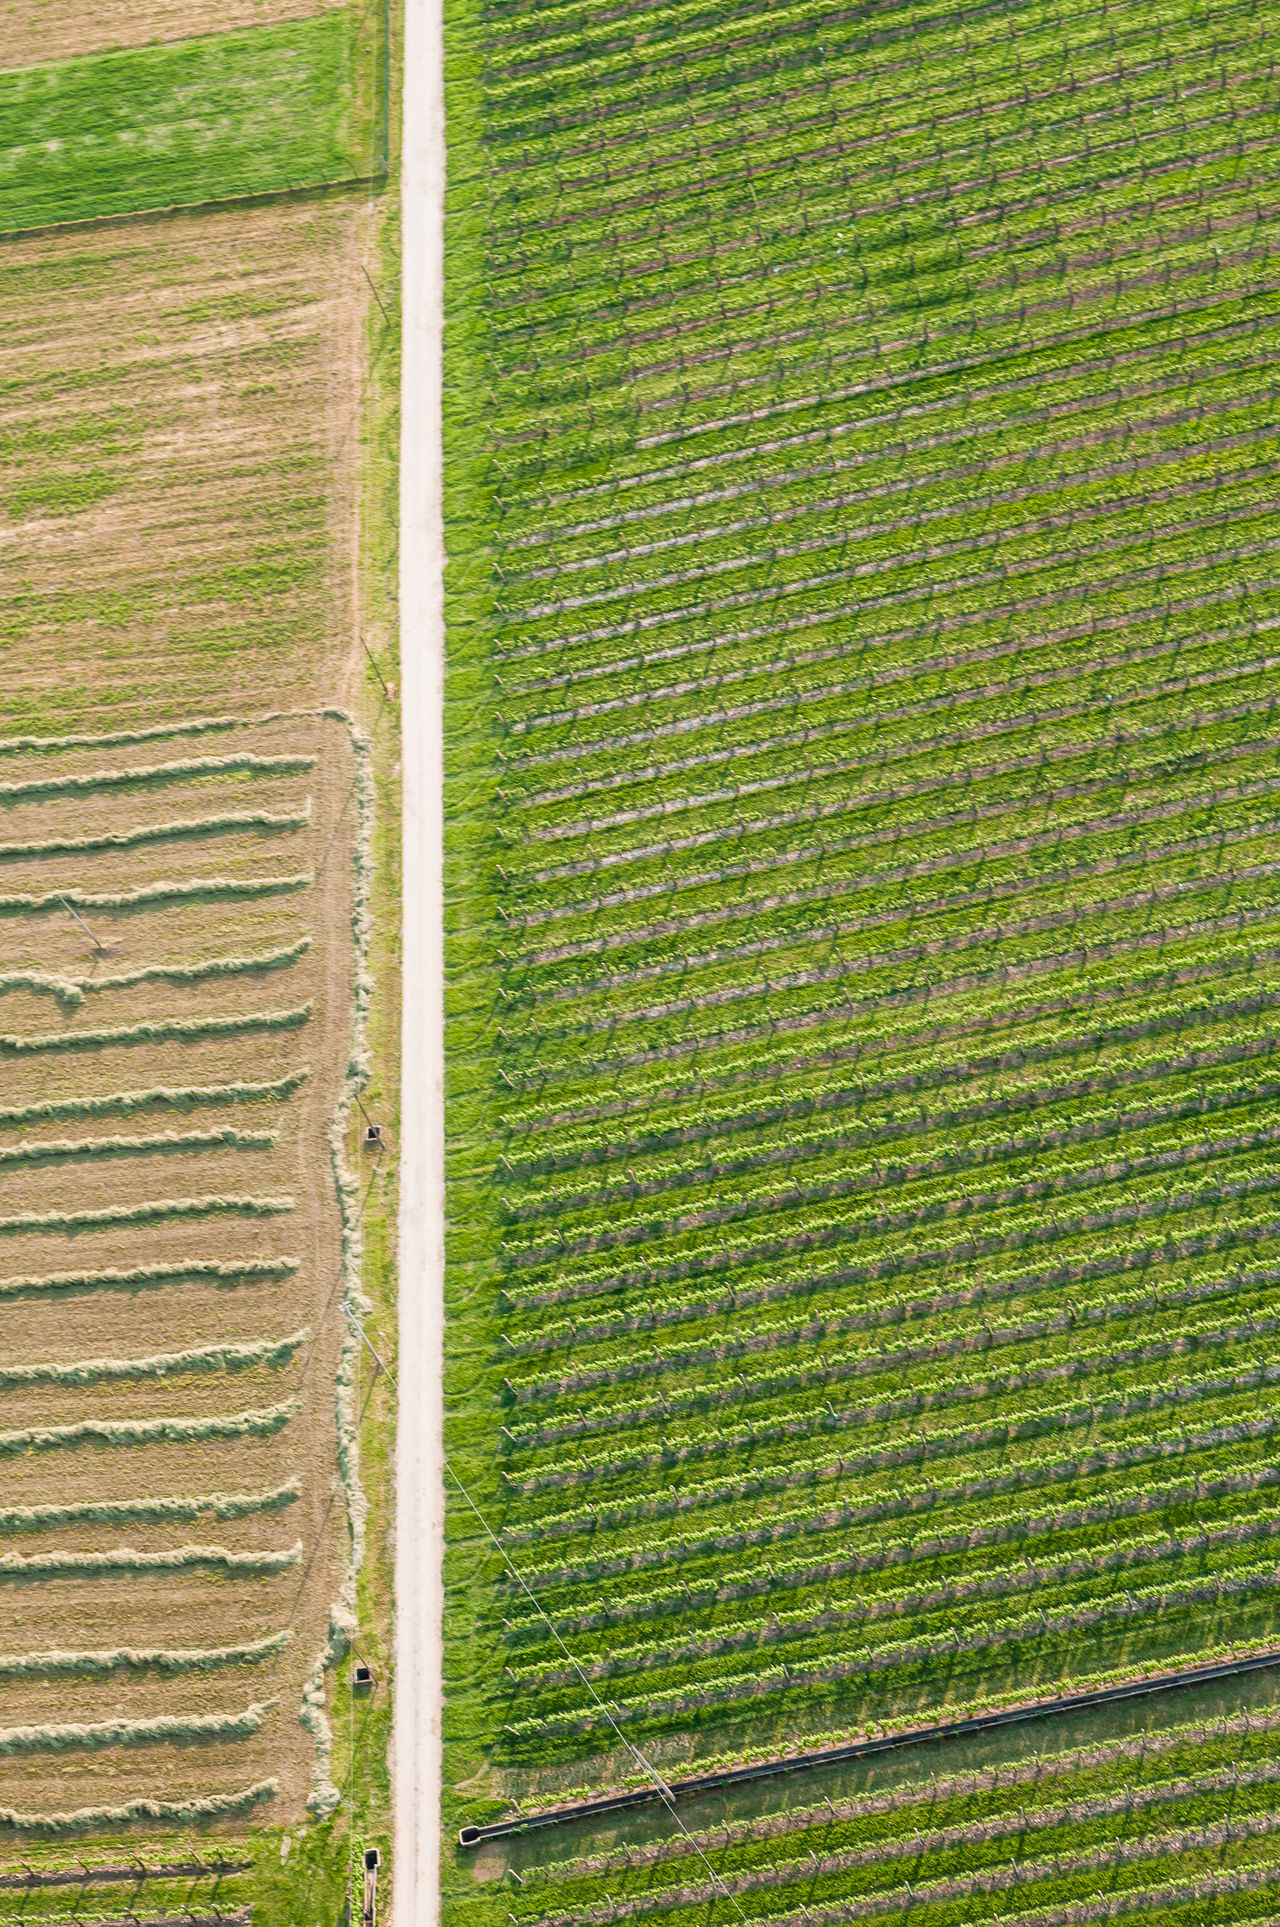 Aerial Photography Agricultural Land Agriculture Field Flying High Grass Green Green Color Italy Landscape Nature Pattern Prosecco Prosecco Land Rural Scene Veneto